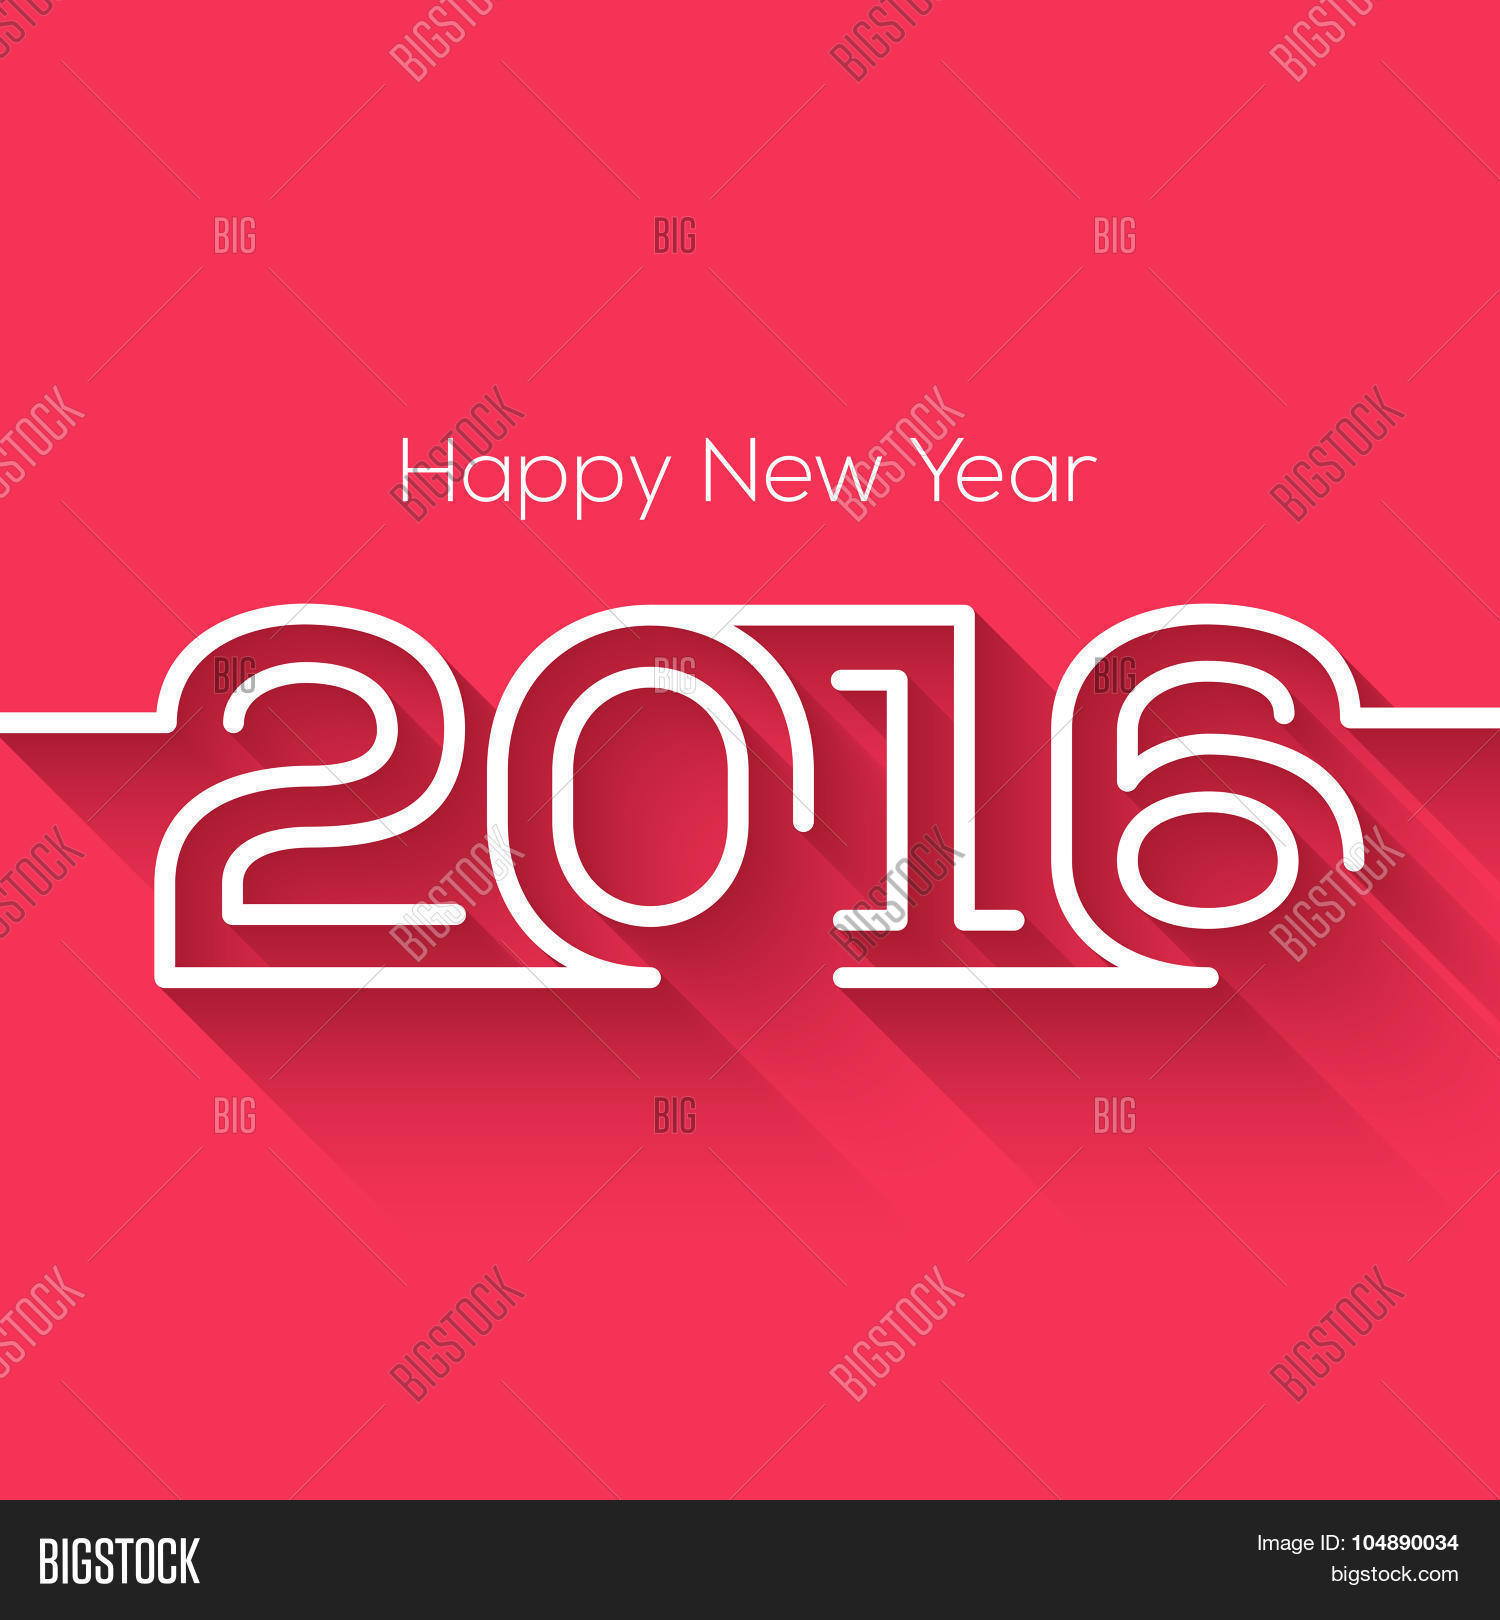 creative happy new year 2016 design flat design happy new year 2016 creative greeting